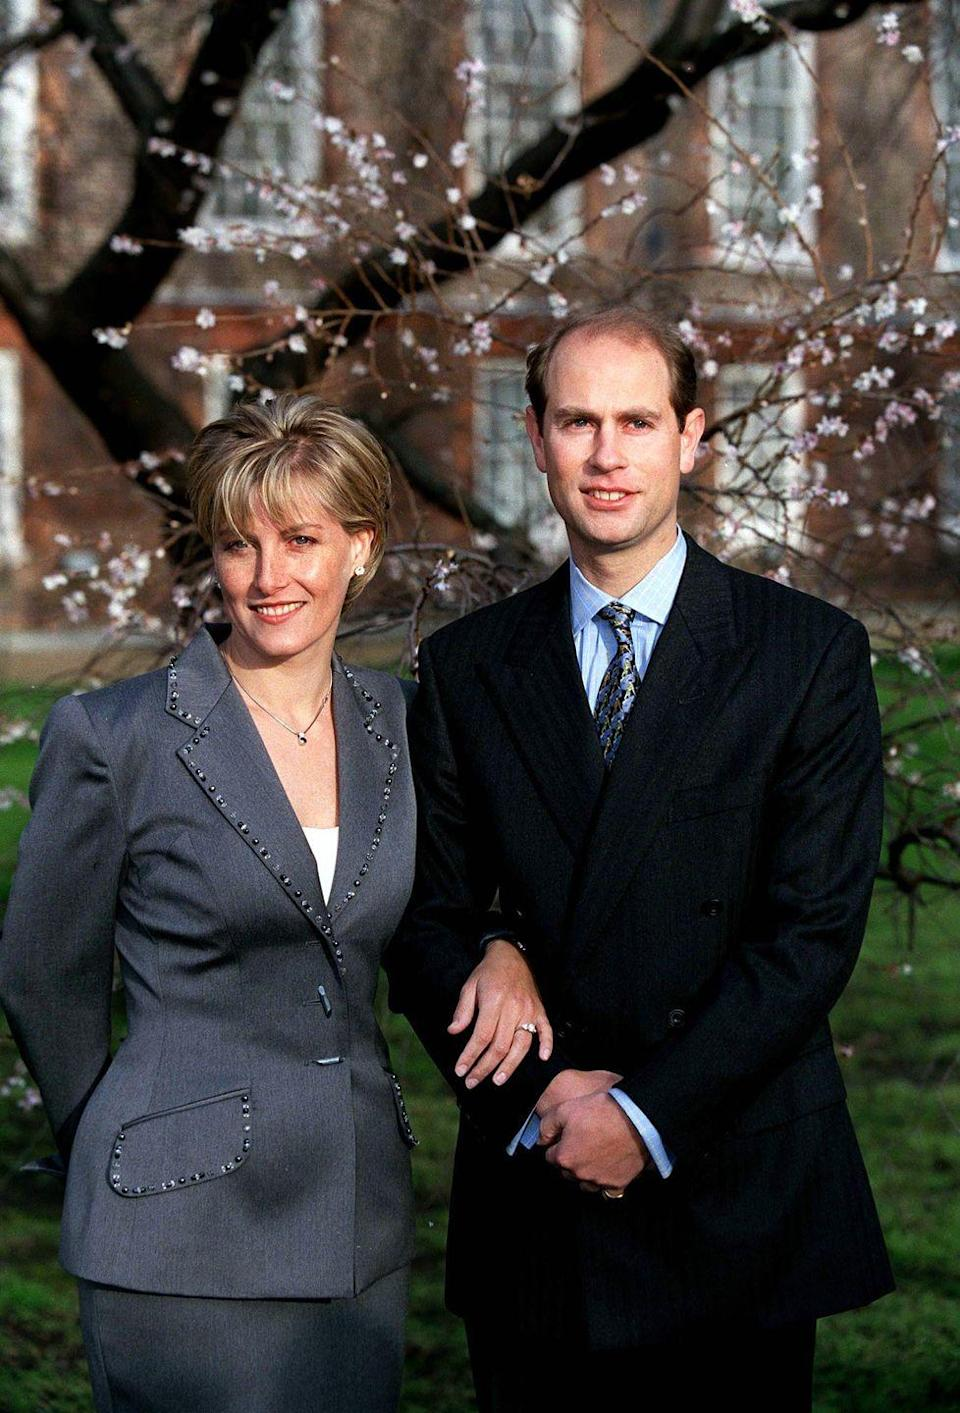 <p>Queen Elizabeth's youngest son, Prince Edward, proposed to public relations executive Sophie Rhys-Jones in 1999. The couple announced the news in London on January 1999 and were married later that year at St George's Chapel. </p>